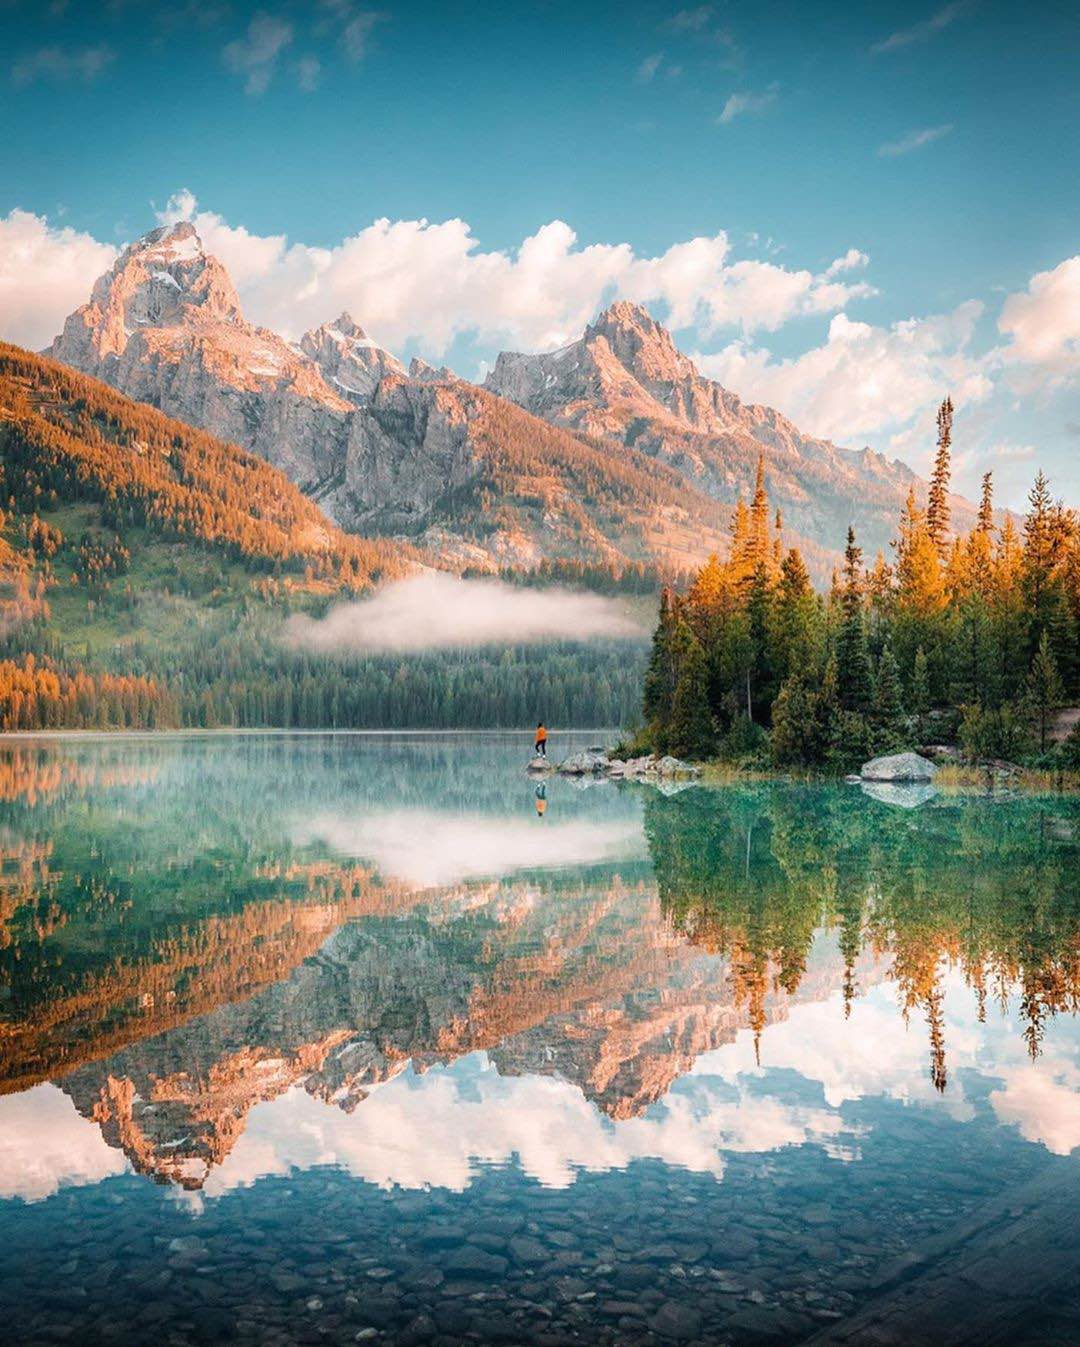 Cruise-America-Grand-Teton-National-Park-RV-Campgrounds-ryanresatka.jpg